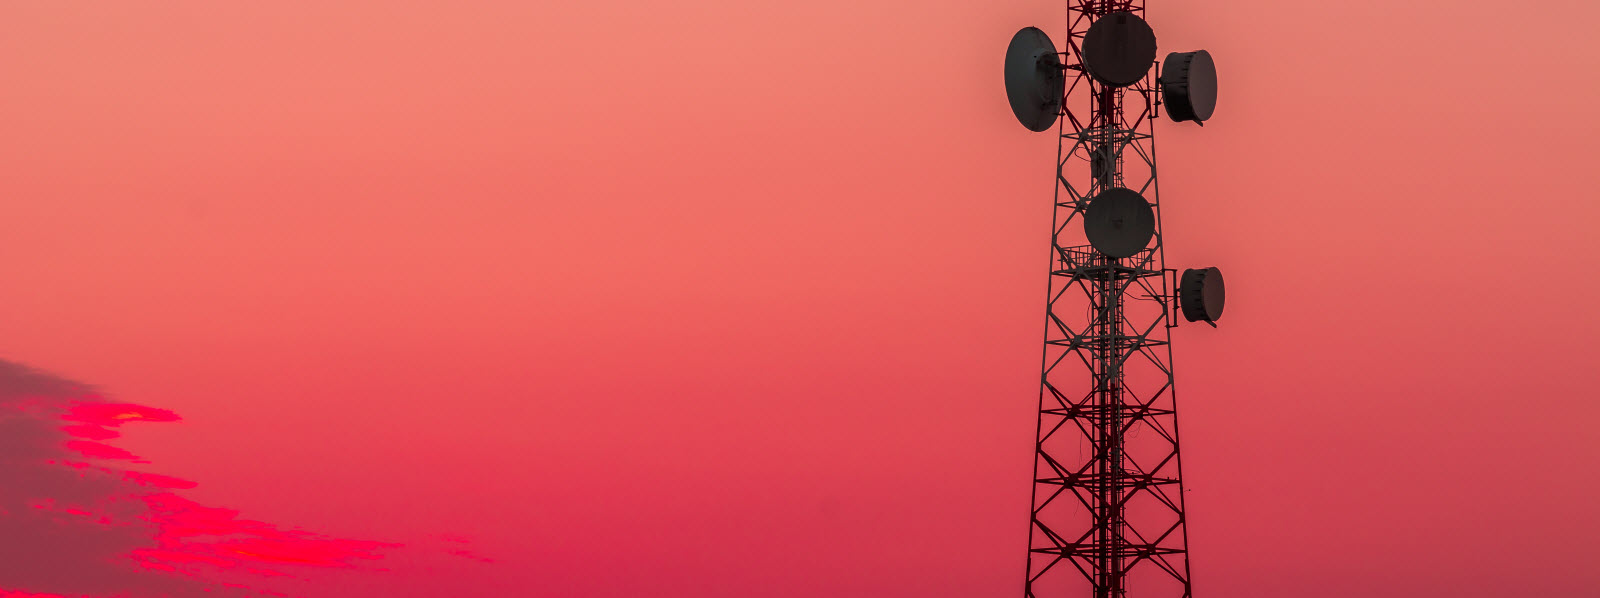 Telecom Implements Splunk to Help with Network Optimization